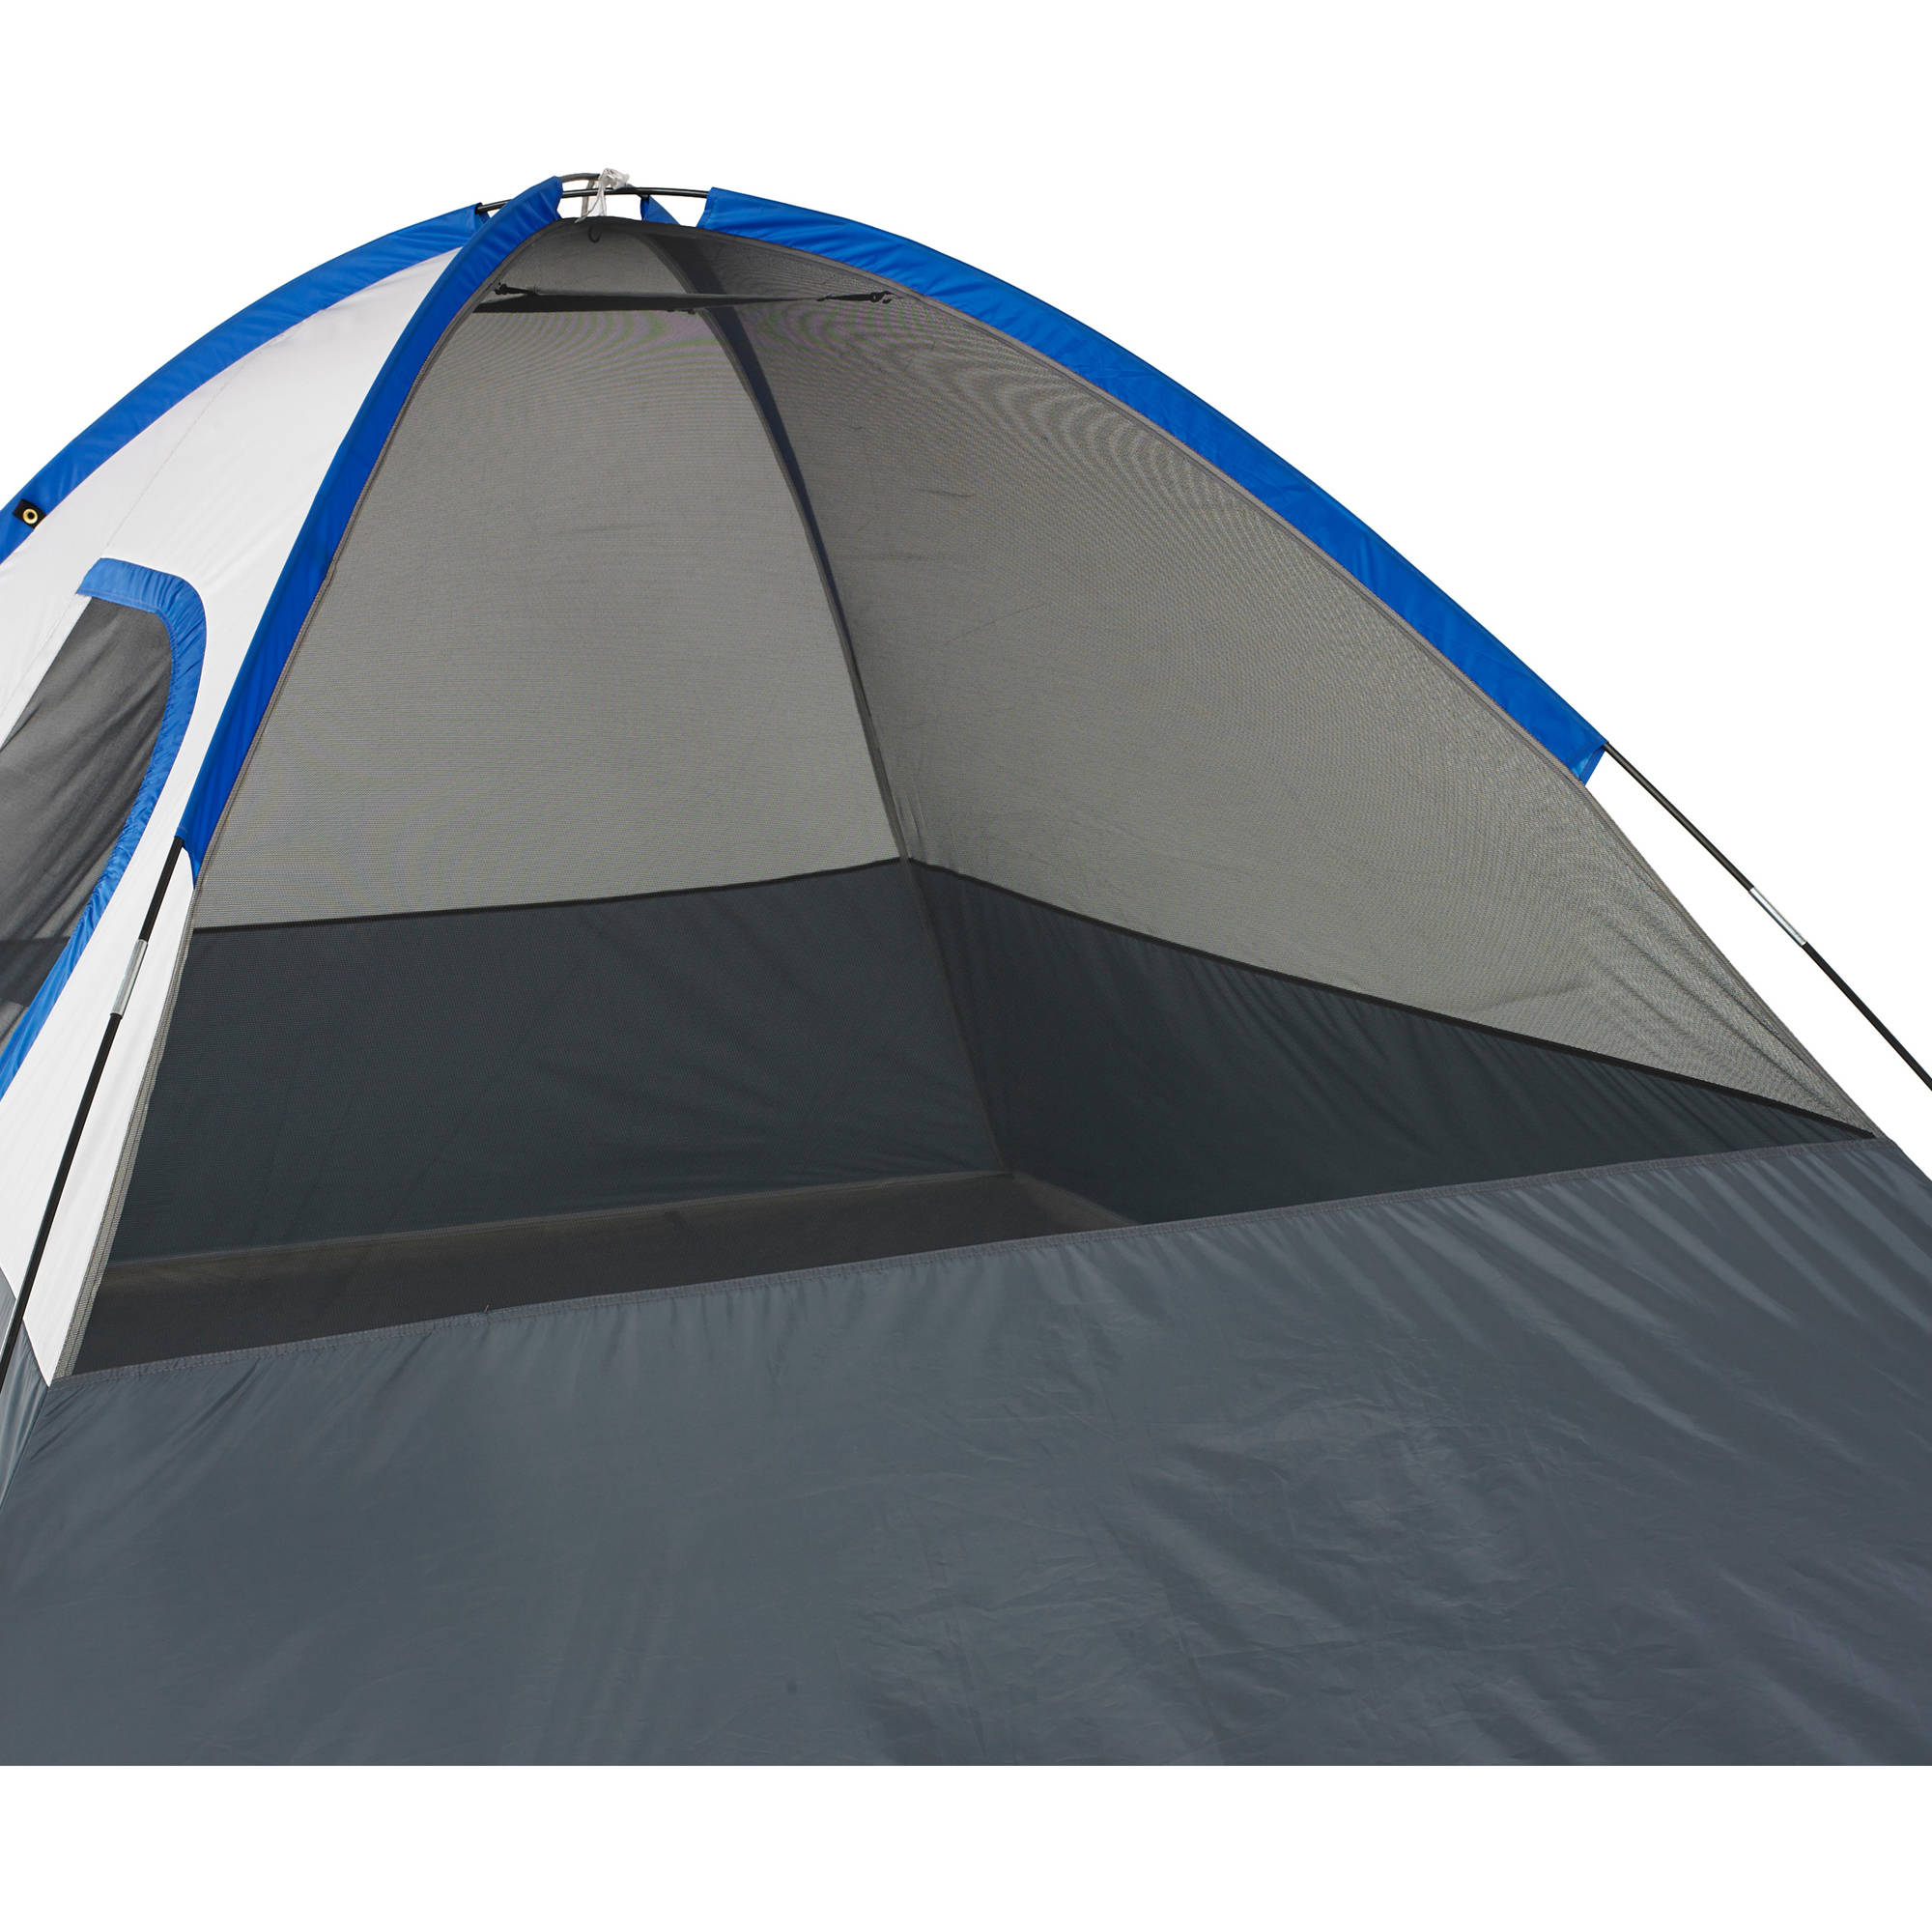 sc 1 st  Walmart & Ozark Trail 5-Person Dome Tent - Walmart.com